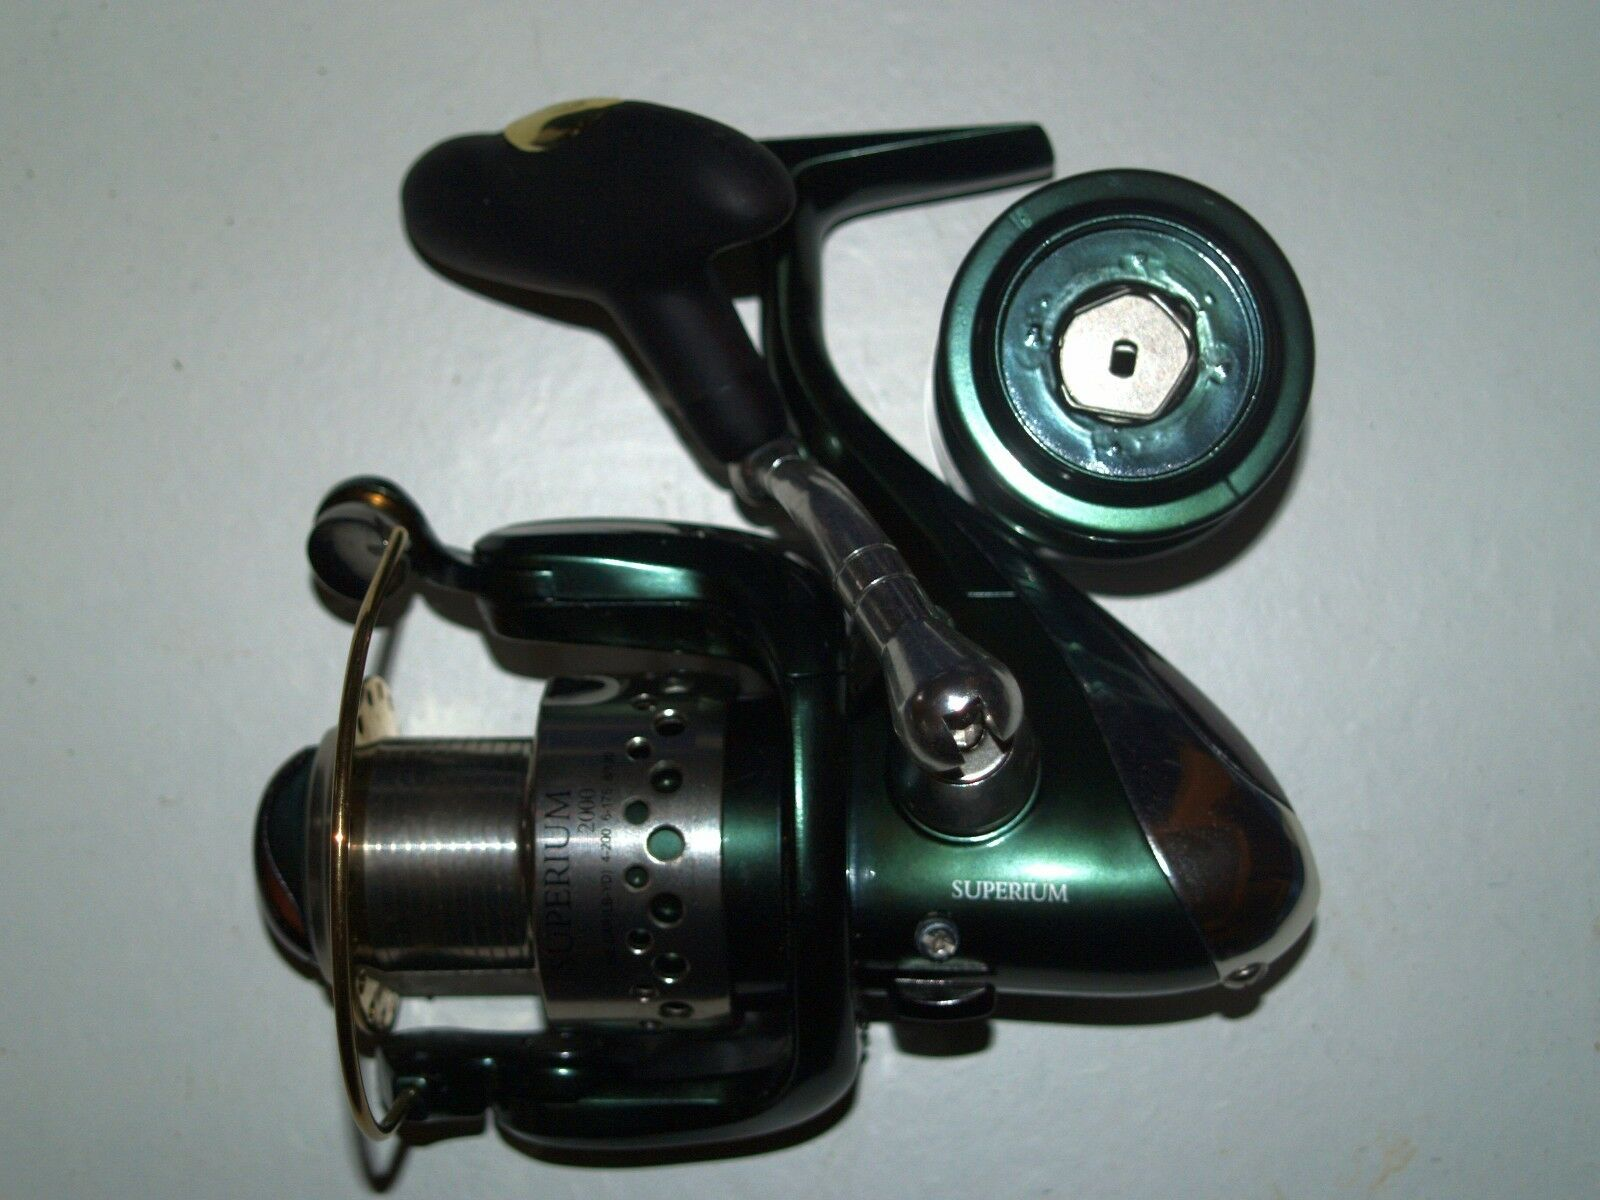 ULTIMATE ULTIMATE ULTIMATE SUPERIUM 2000 FIXED SPOOL REEL. e226a1